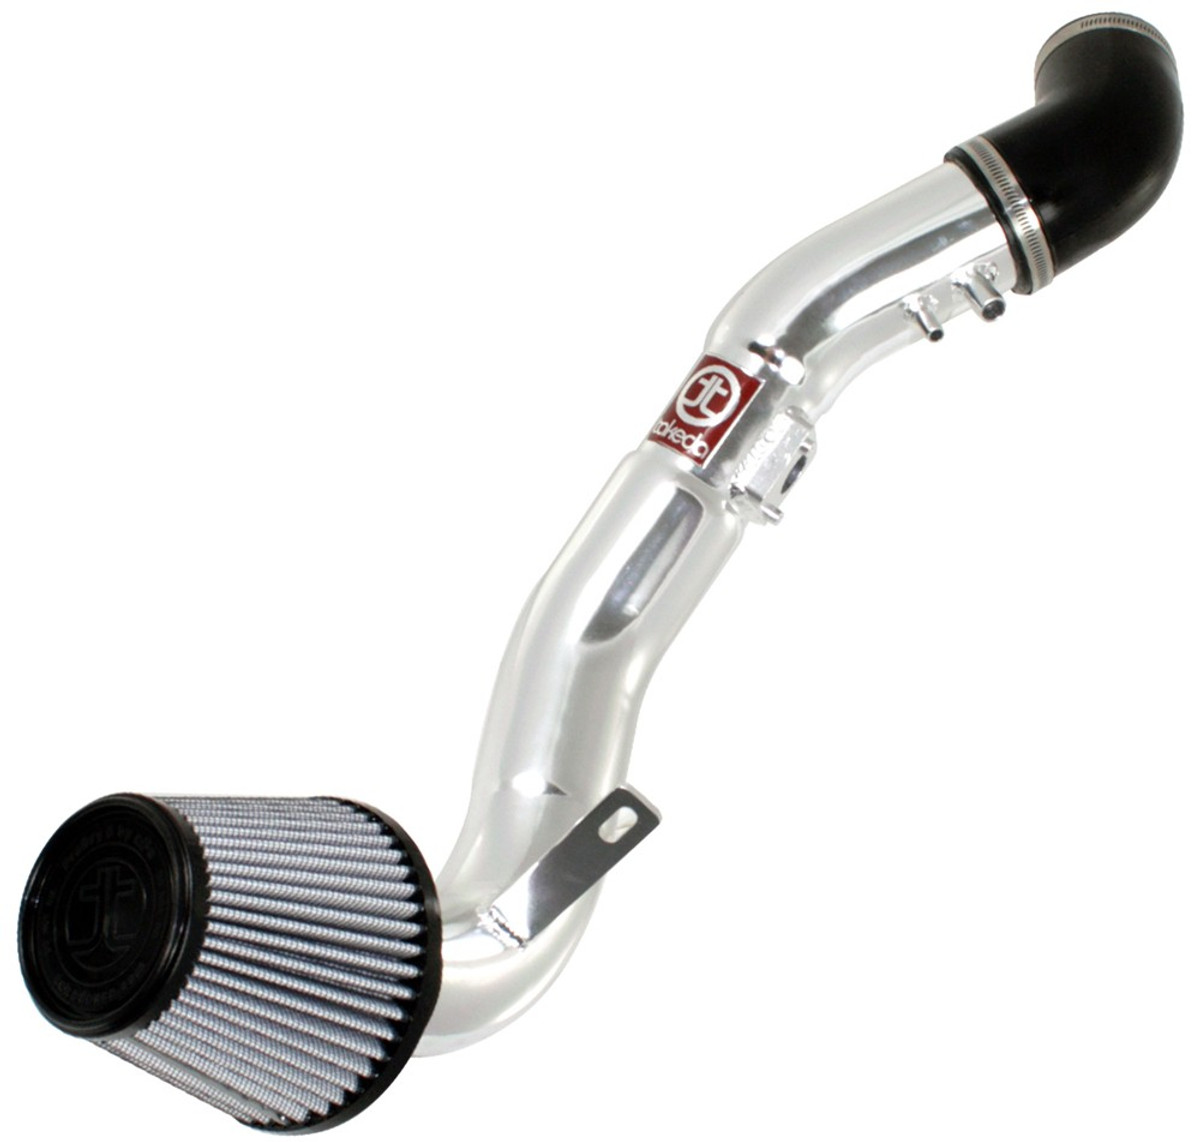 Red Cold Air Intake kit /& Filter For 2006-2011 Honda Civic Si 2.0L 4Cyl